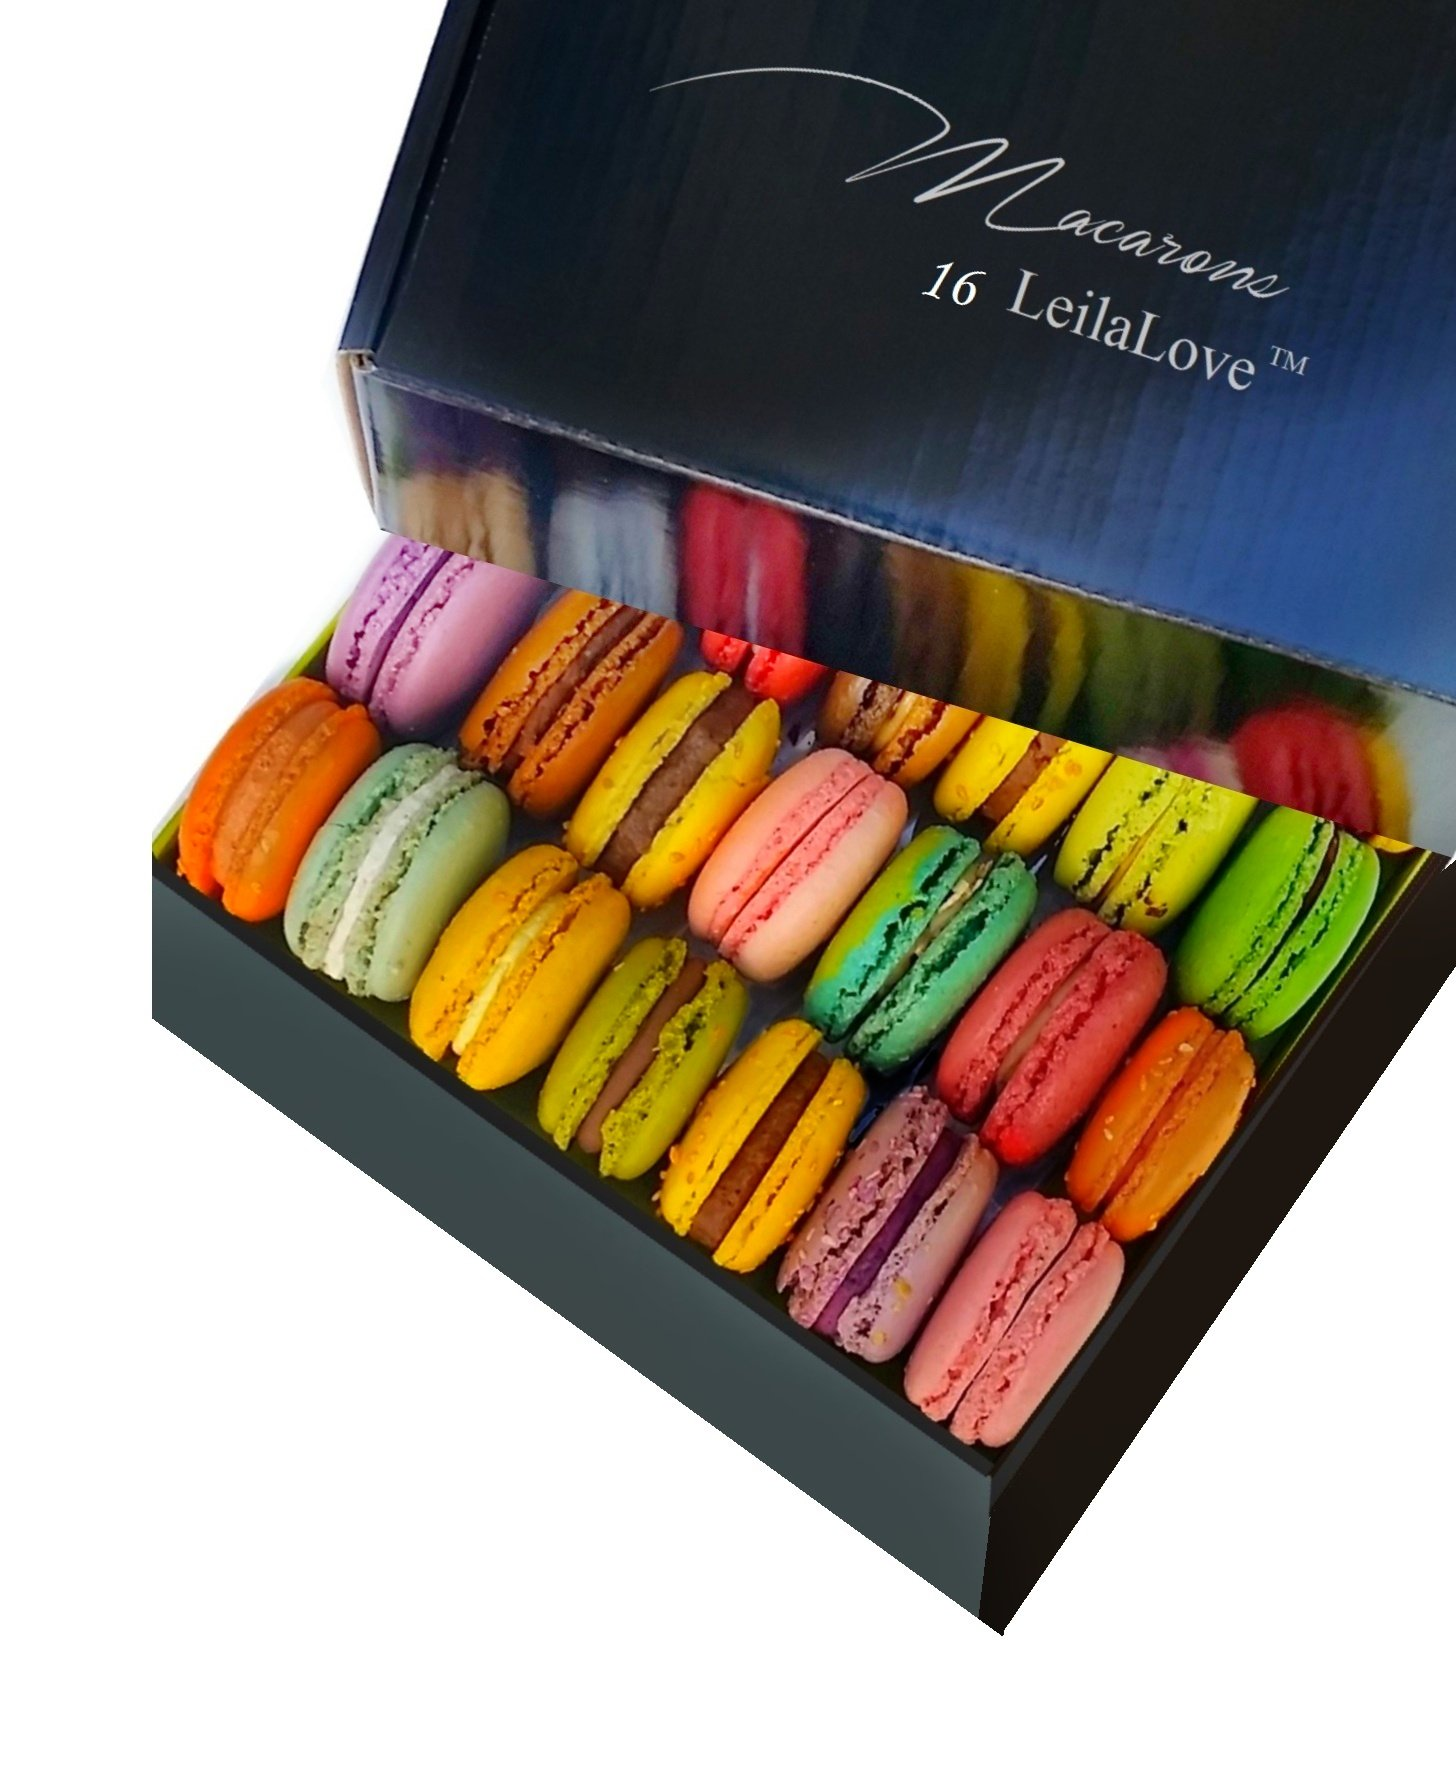 Amazon leilalove macarons 6 macaron 6 popular flavors leilalove macarons 16 parisian macaron collections of dozen flavors elegant gentleman style gift box urmus Image collections